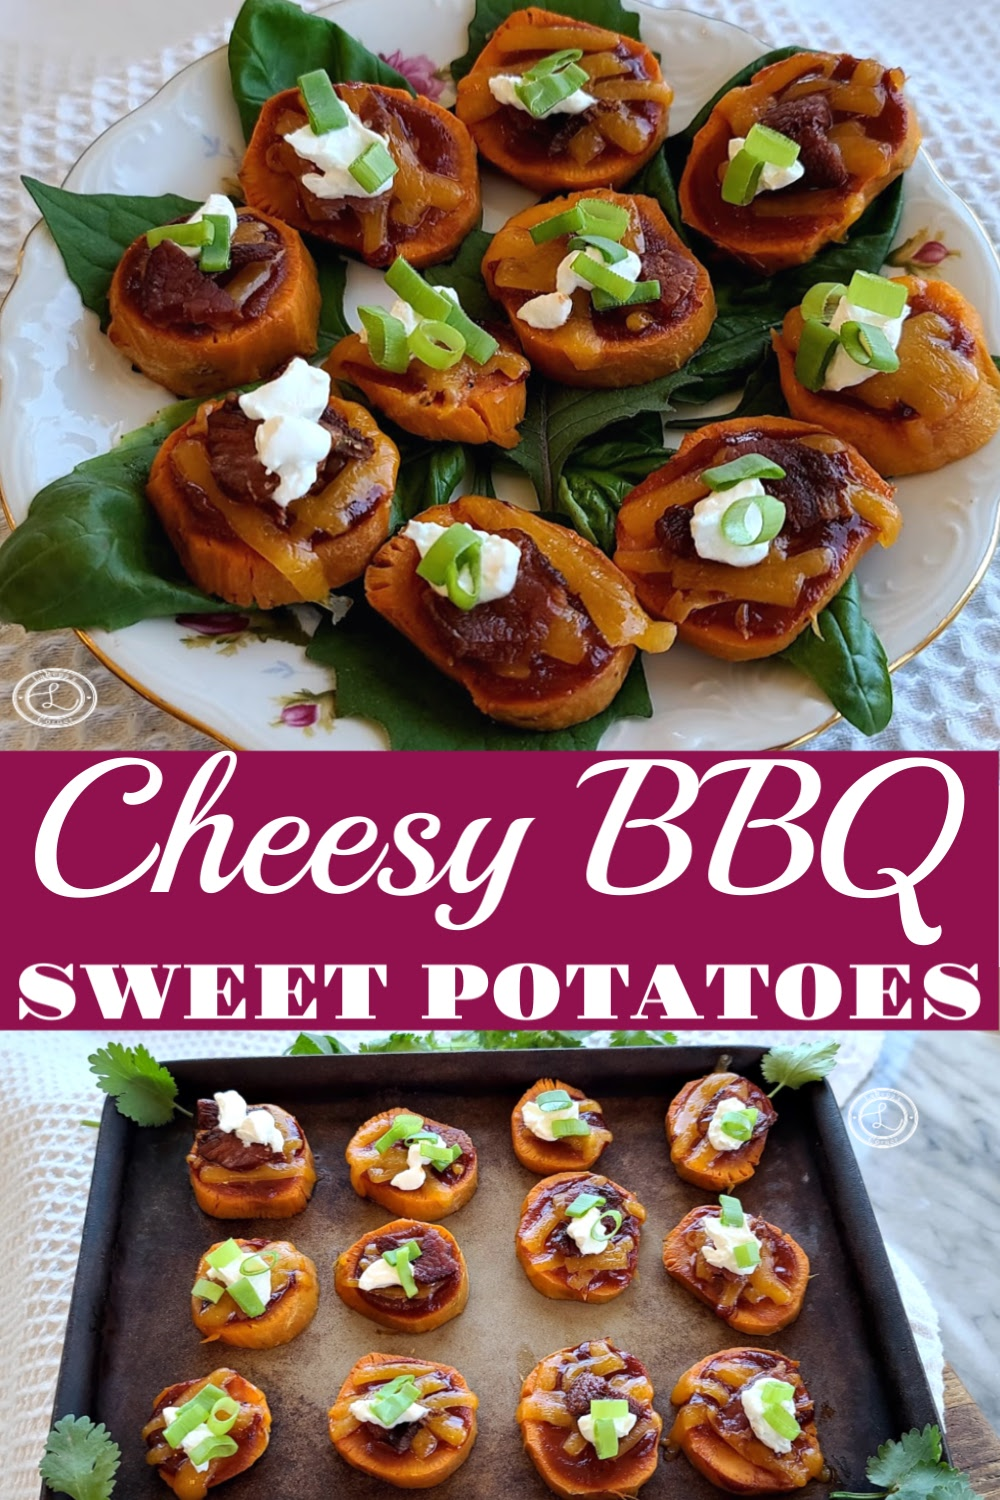 Cheesy BBQ Sweet Potato on a plate and on a baking stone